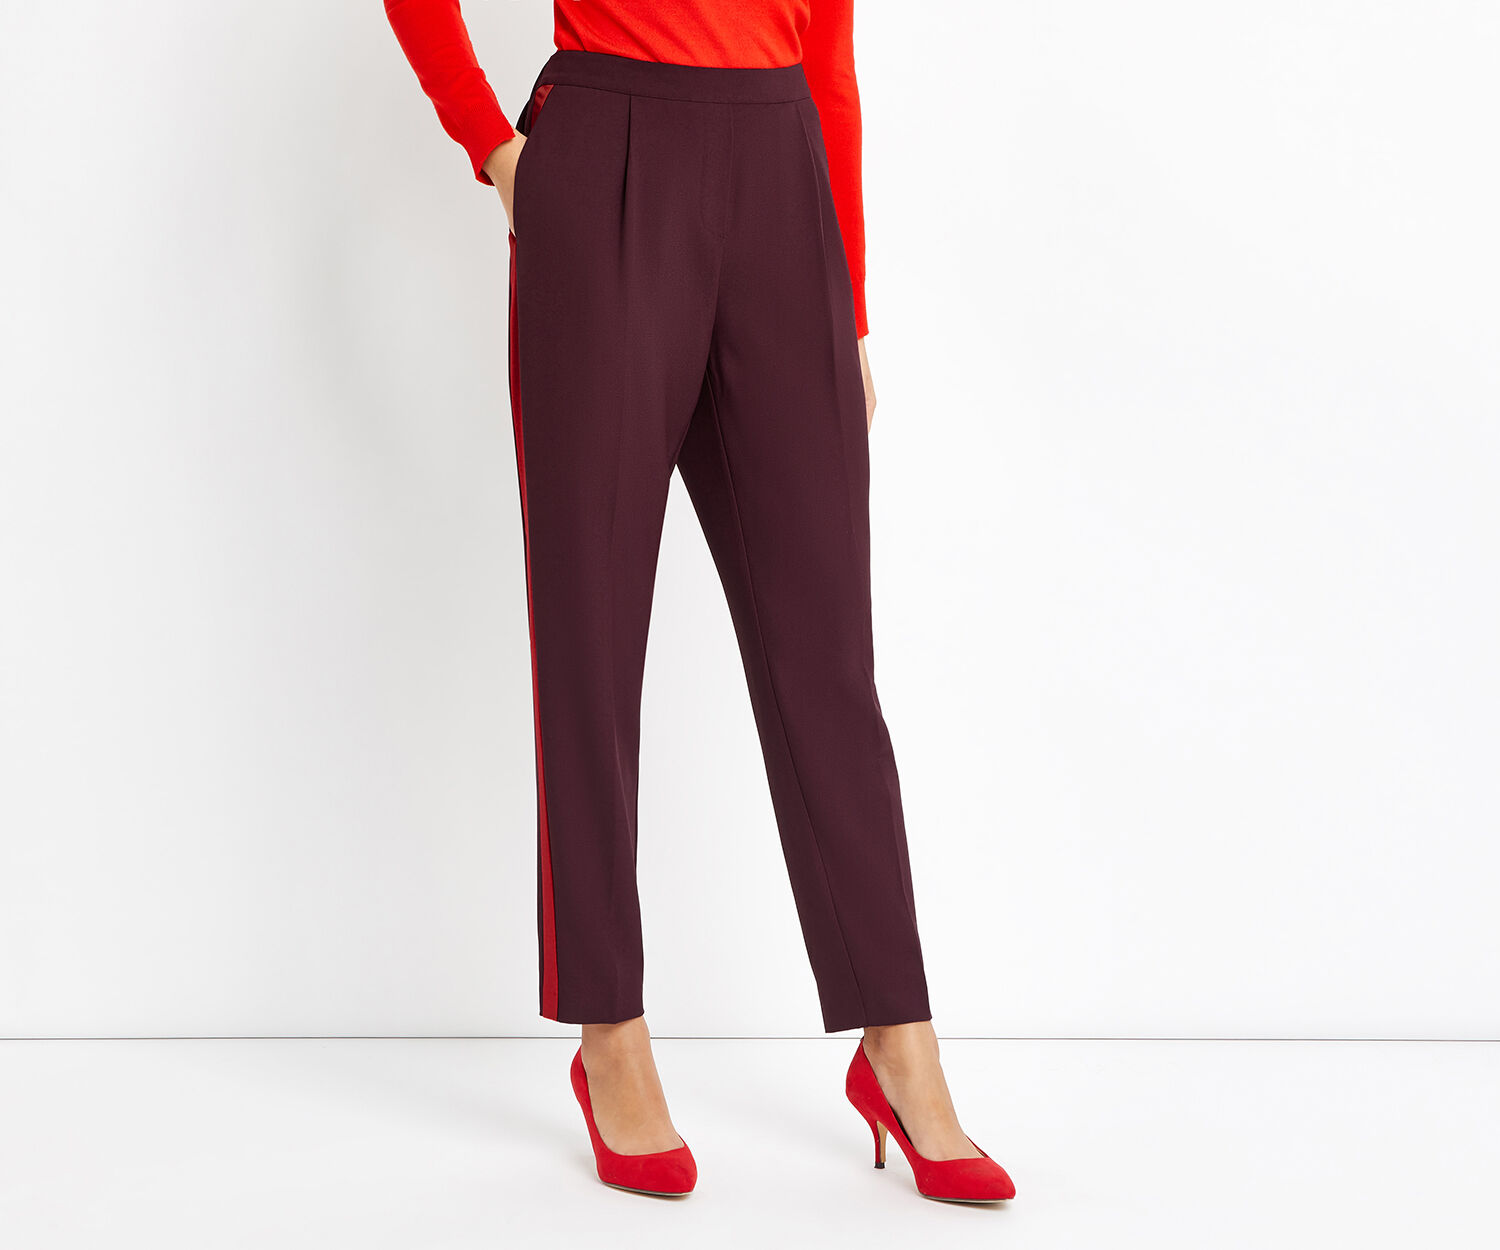 Oasis, SIDE STRIPE TROUSER Burgundy 1